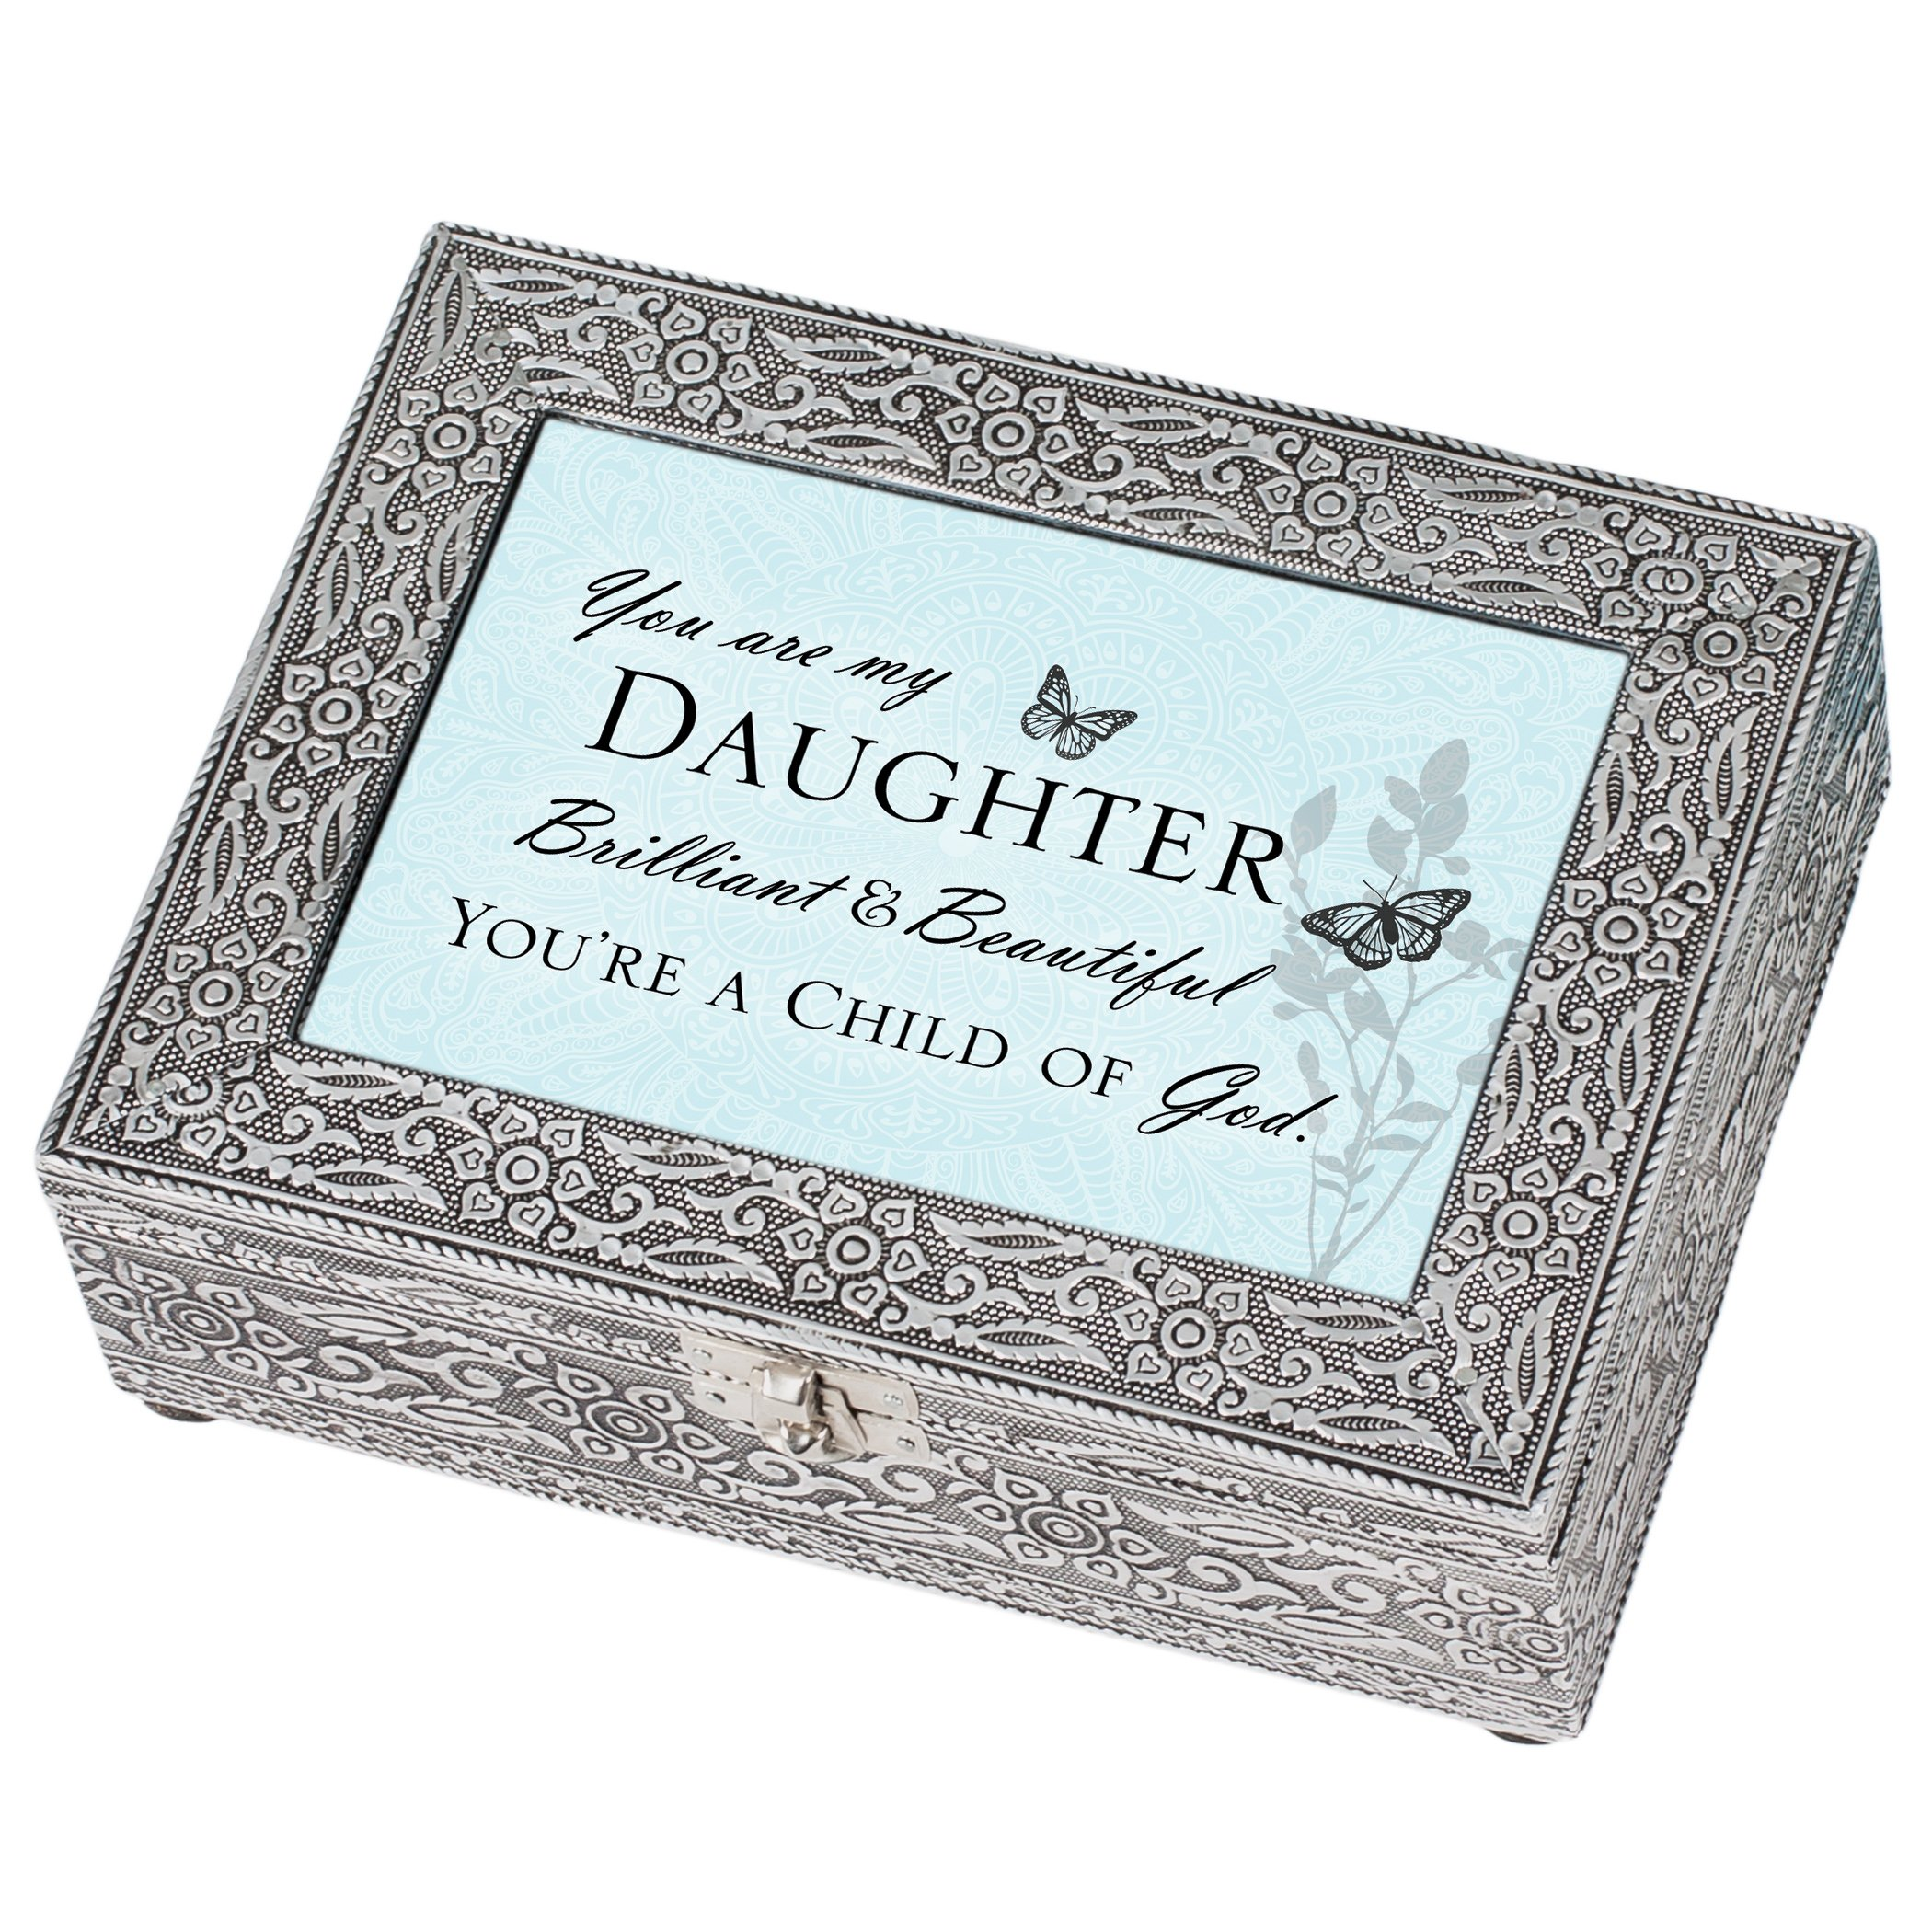 Cottage Garden Daughter Beautiful Child of God Silver Stamped Metal Jewelry Music Box Plays Tune Amazing Grace